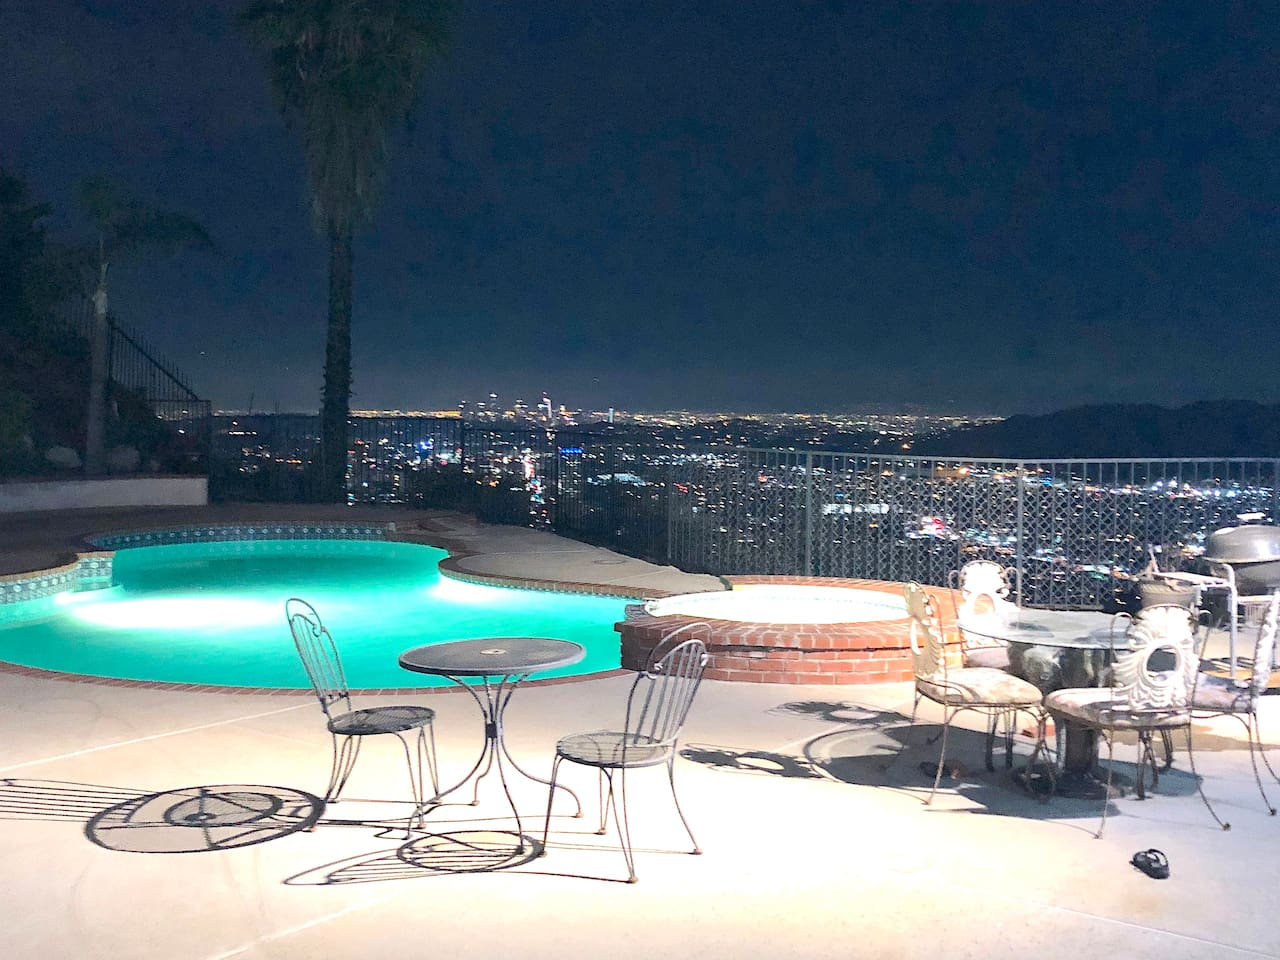 Night city view with the swimming pool